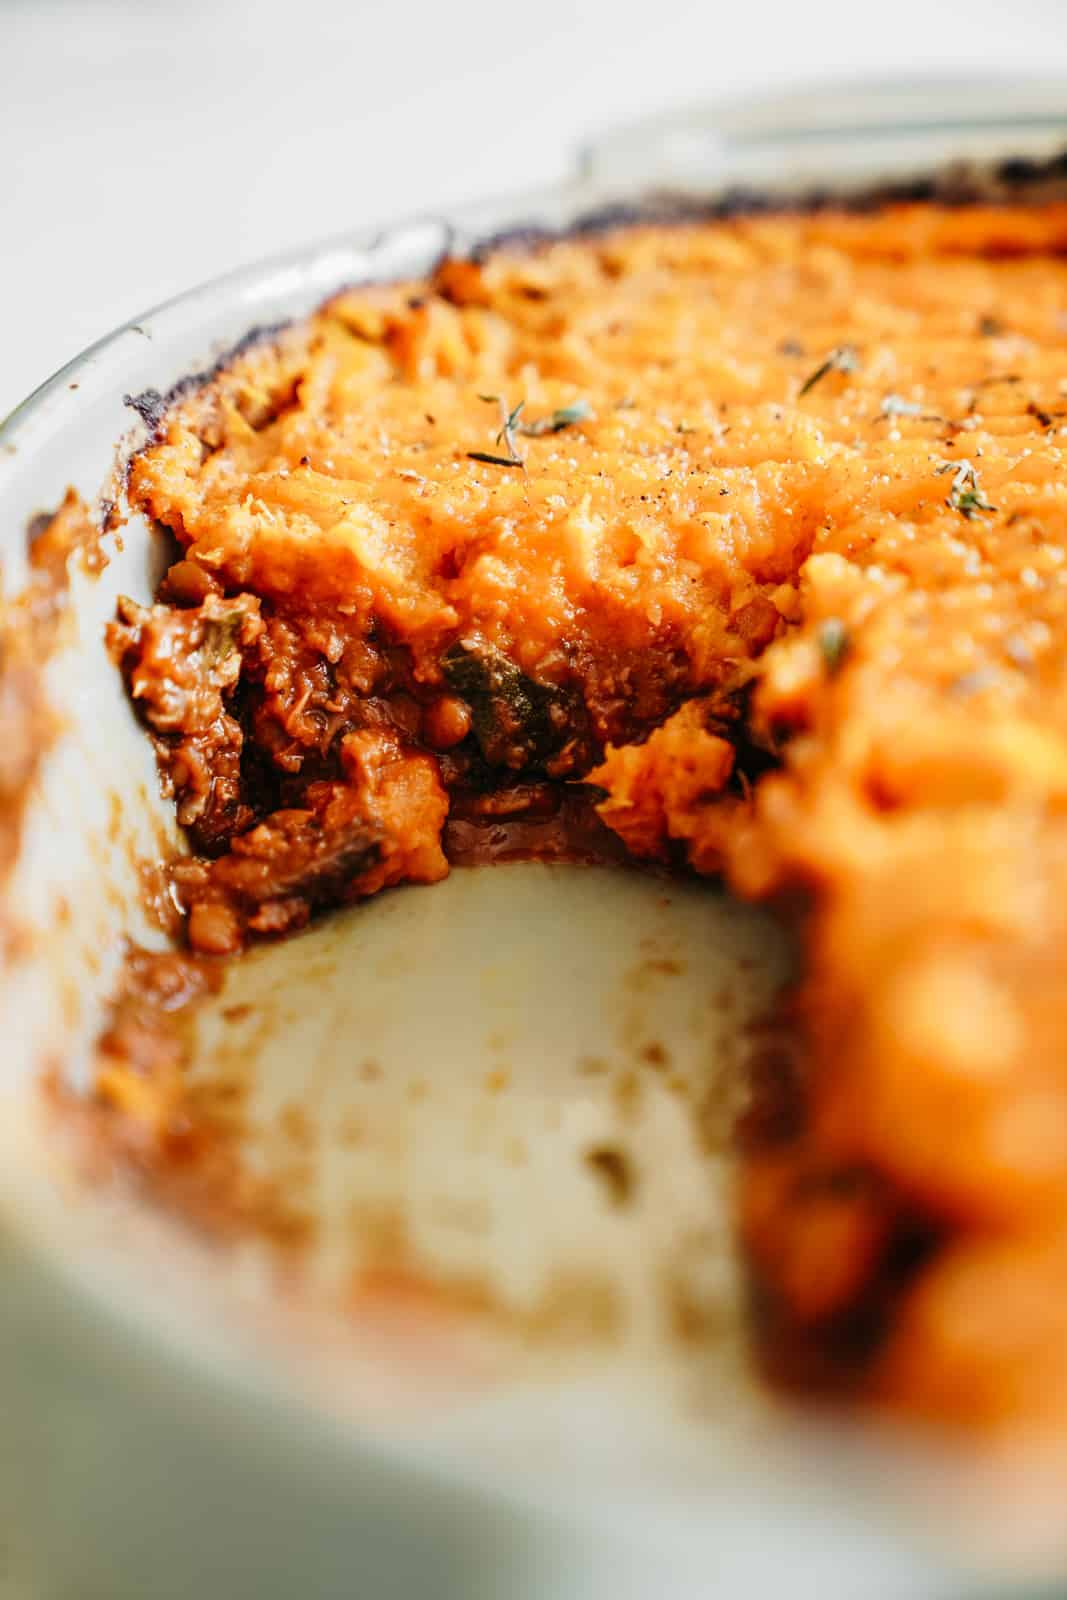 A close-up of a casserole dish with Vegan Shepherd's Pie with a slice removed.